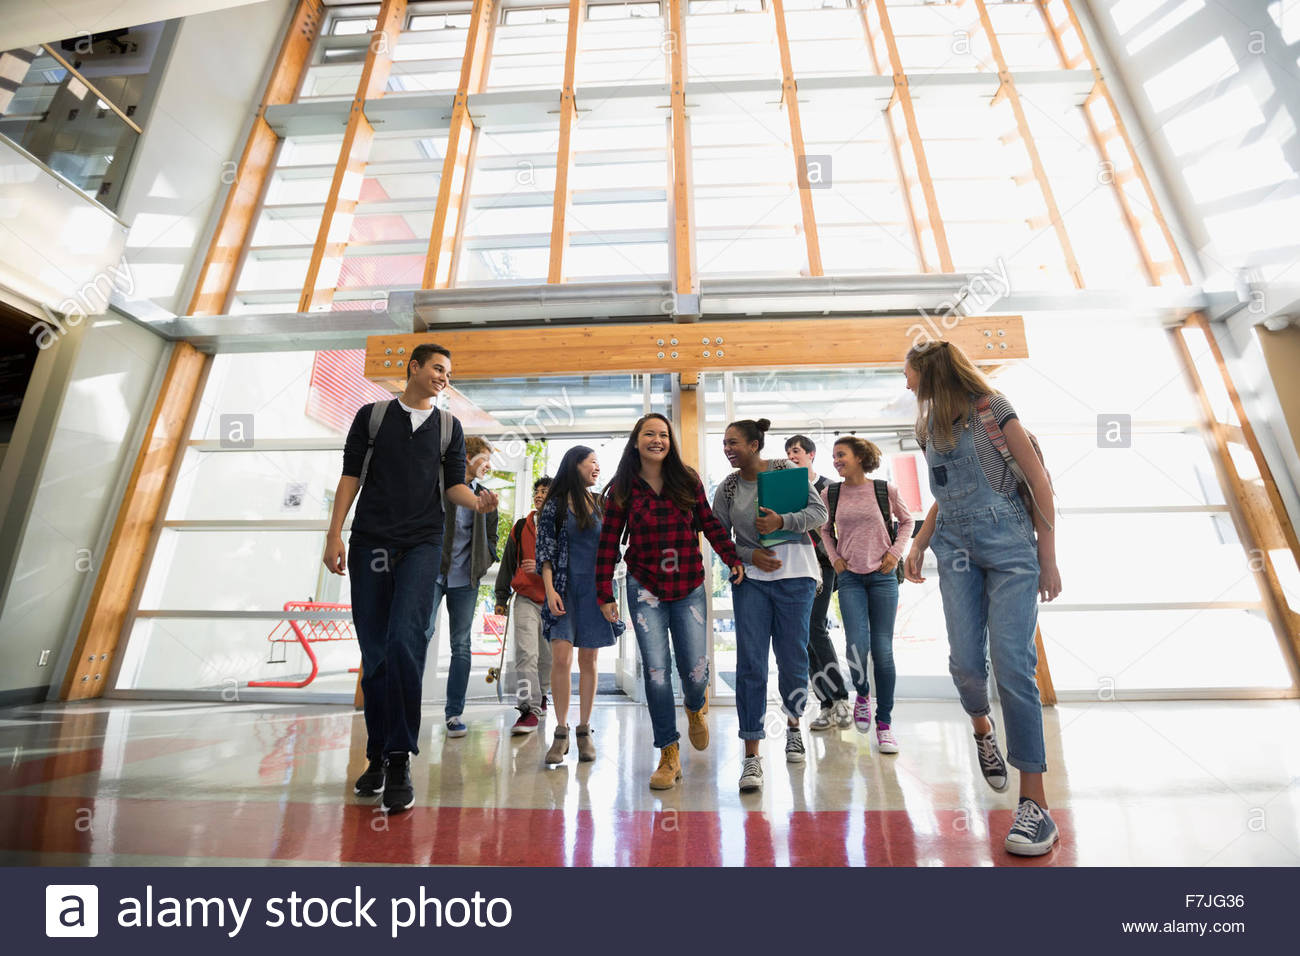 High school students entering school doors - Stock Image